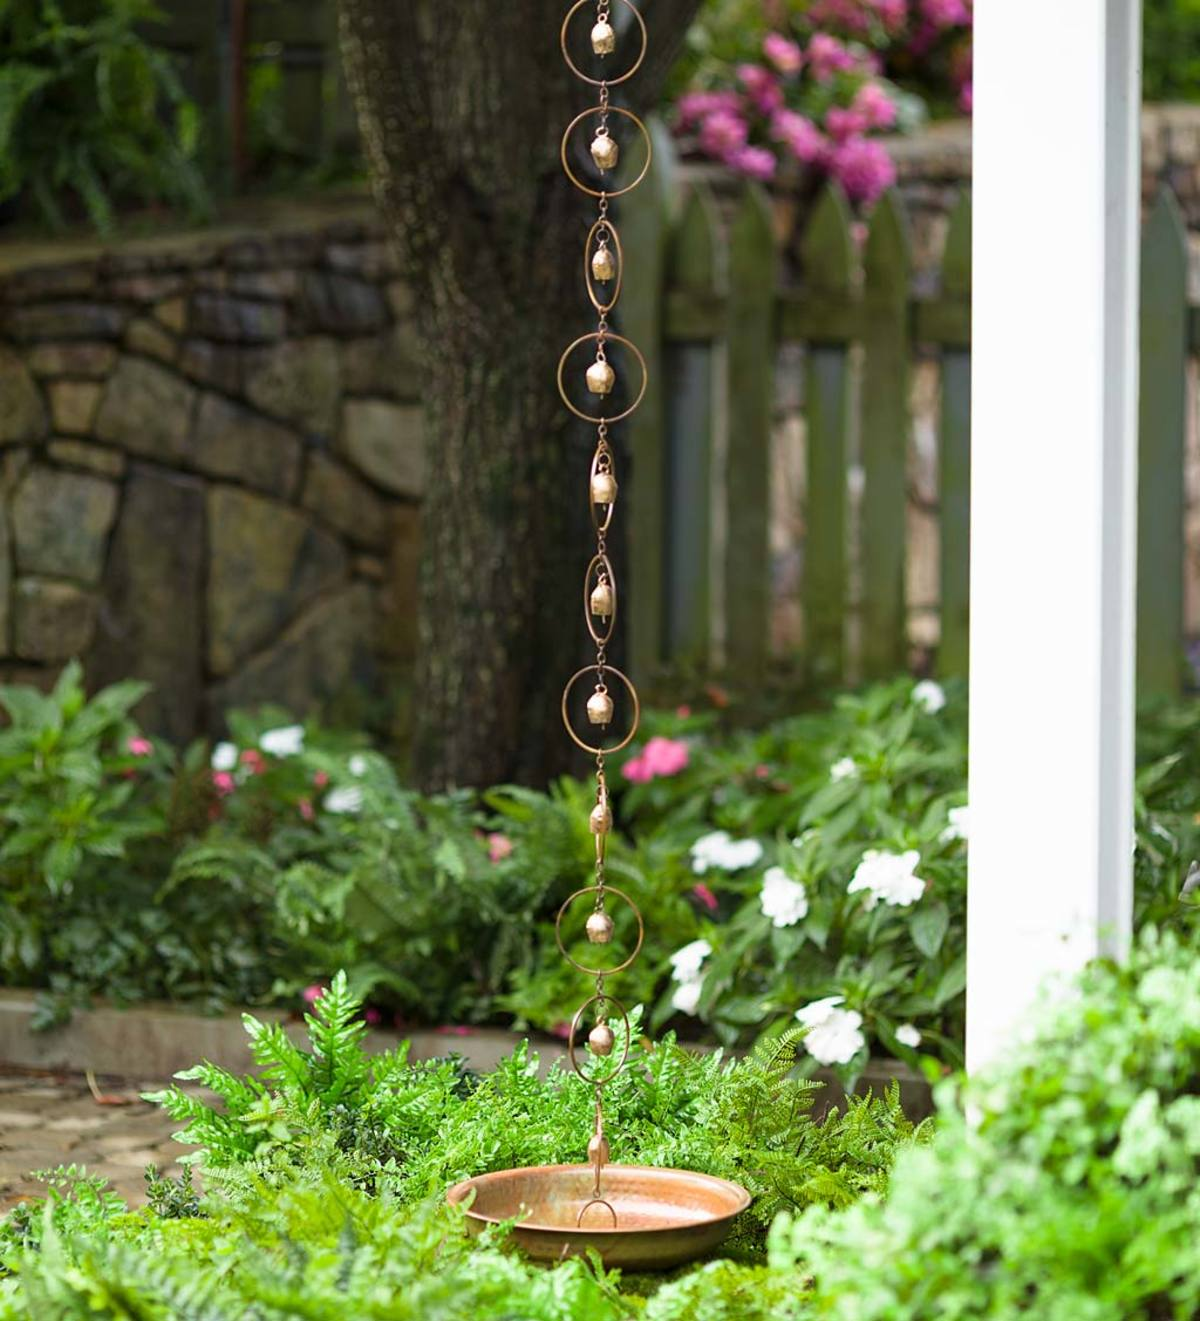 Temple Bell Rain Chain and Receptacle